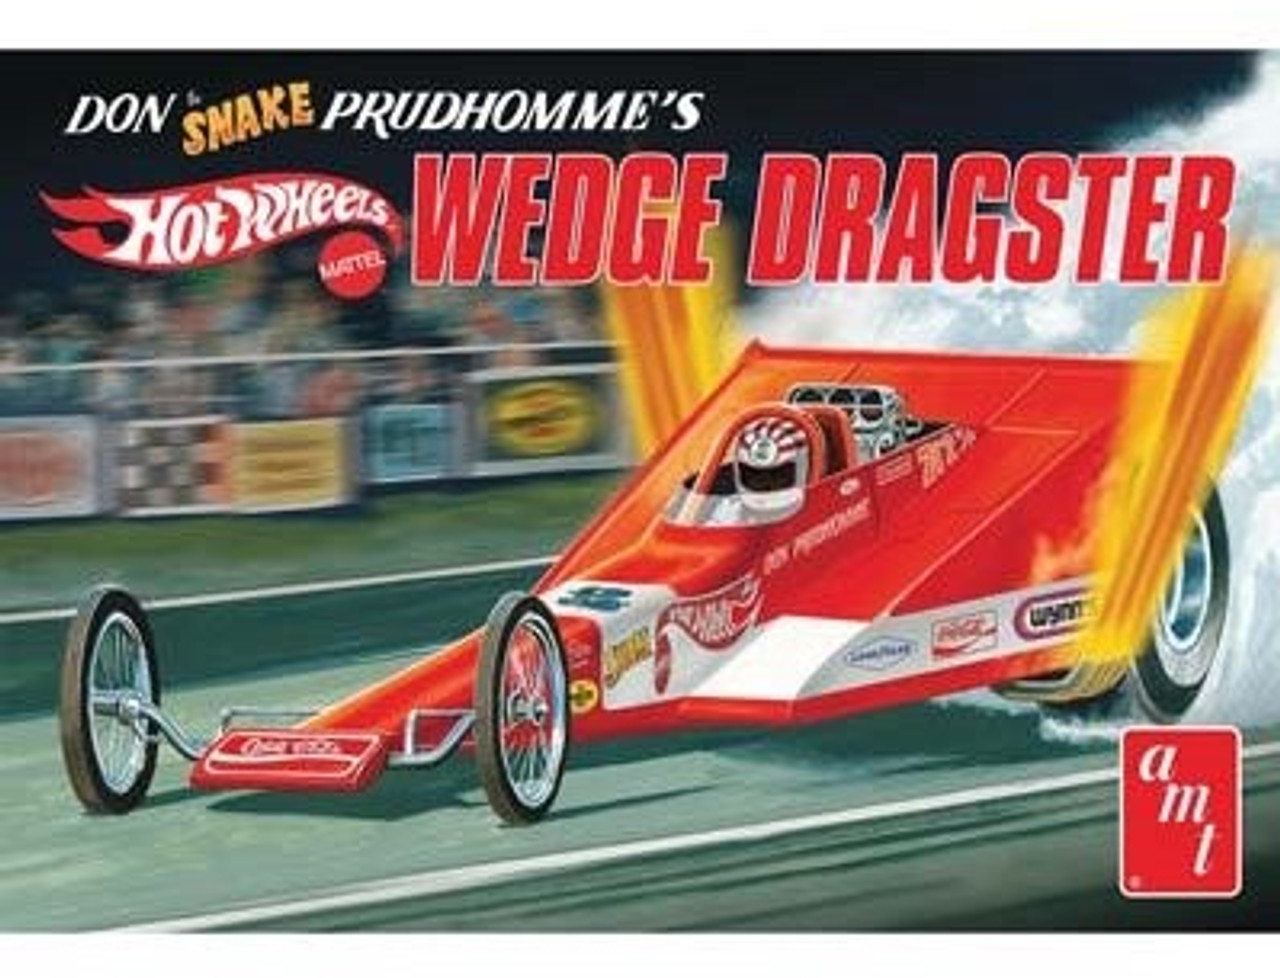 AMT-1049  1/25 Don Snake Prudhomme's Wedge Dragster